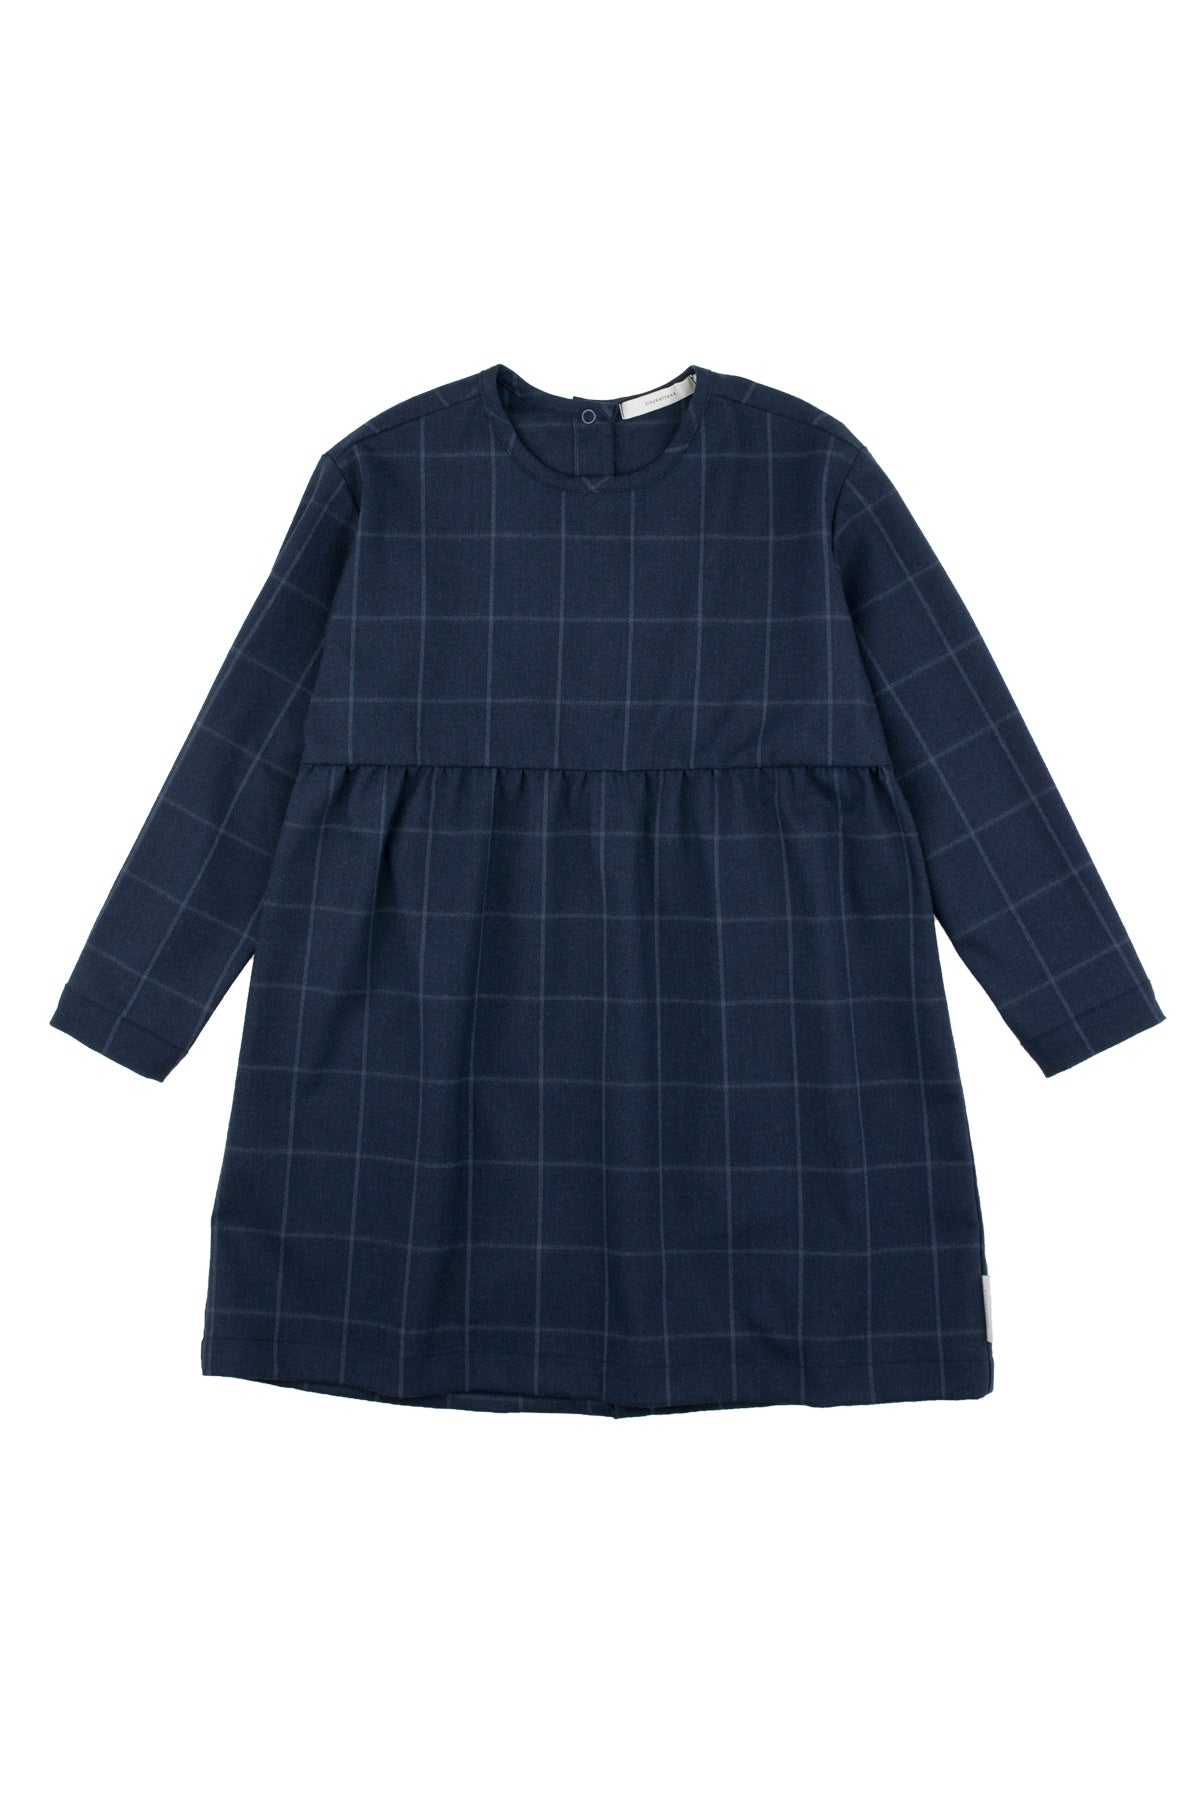 Tiny Cottons Grid Flannel Dress